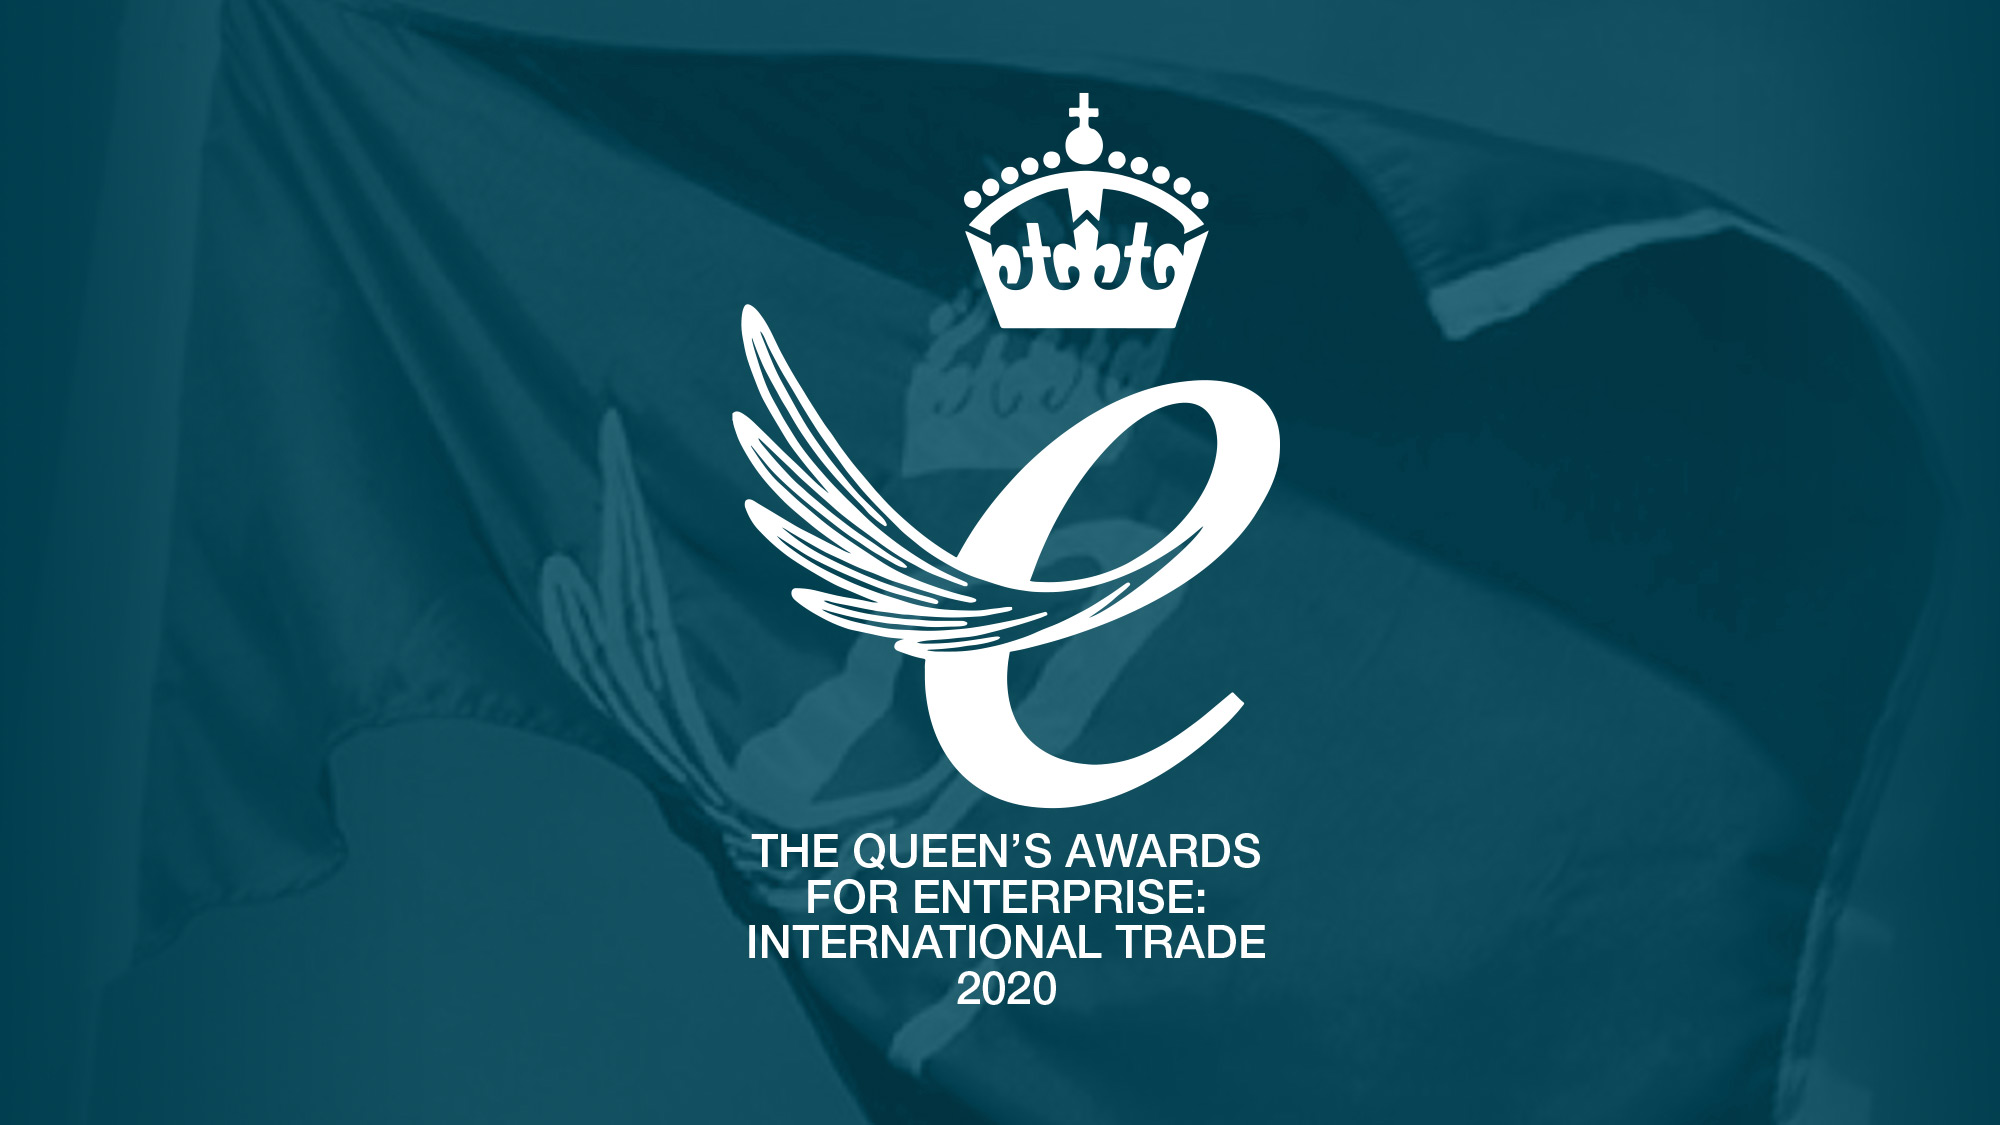 Integrity Cleanroom The Queen's Award 2020 for Enterprise